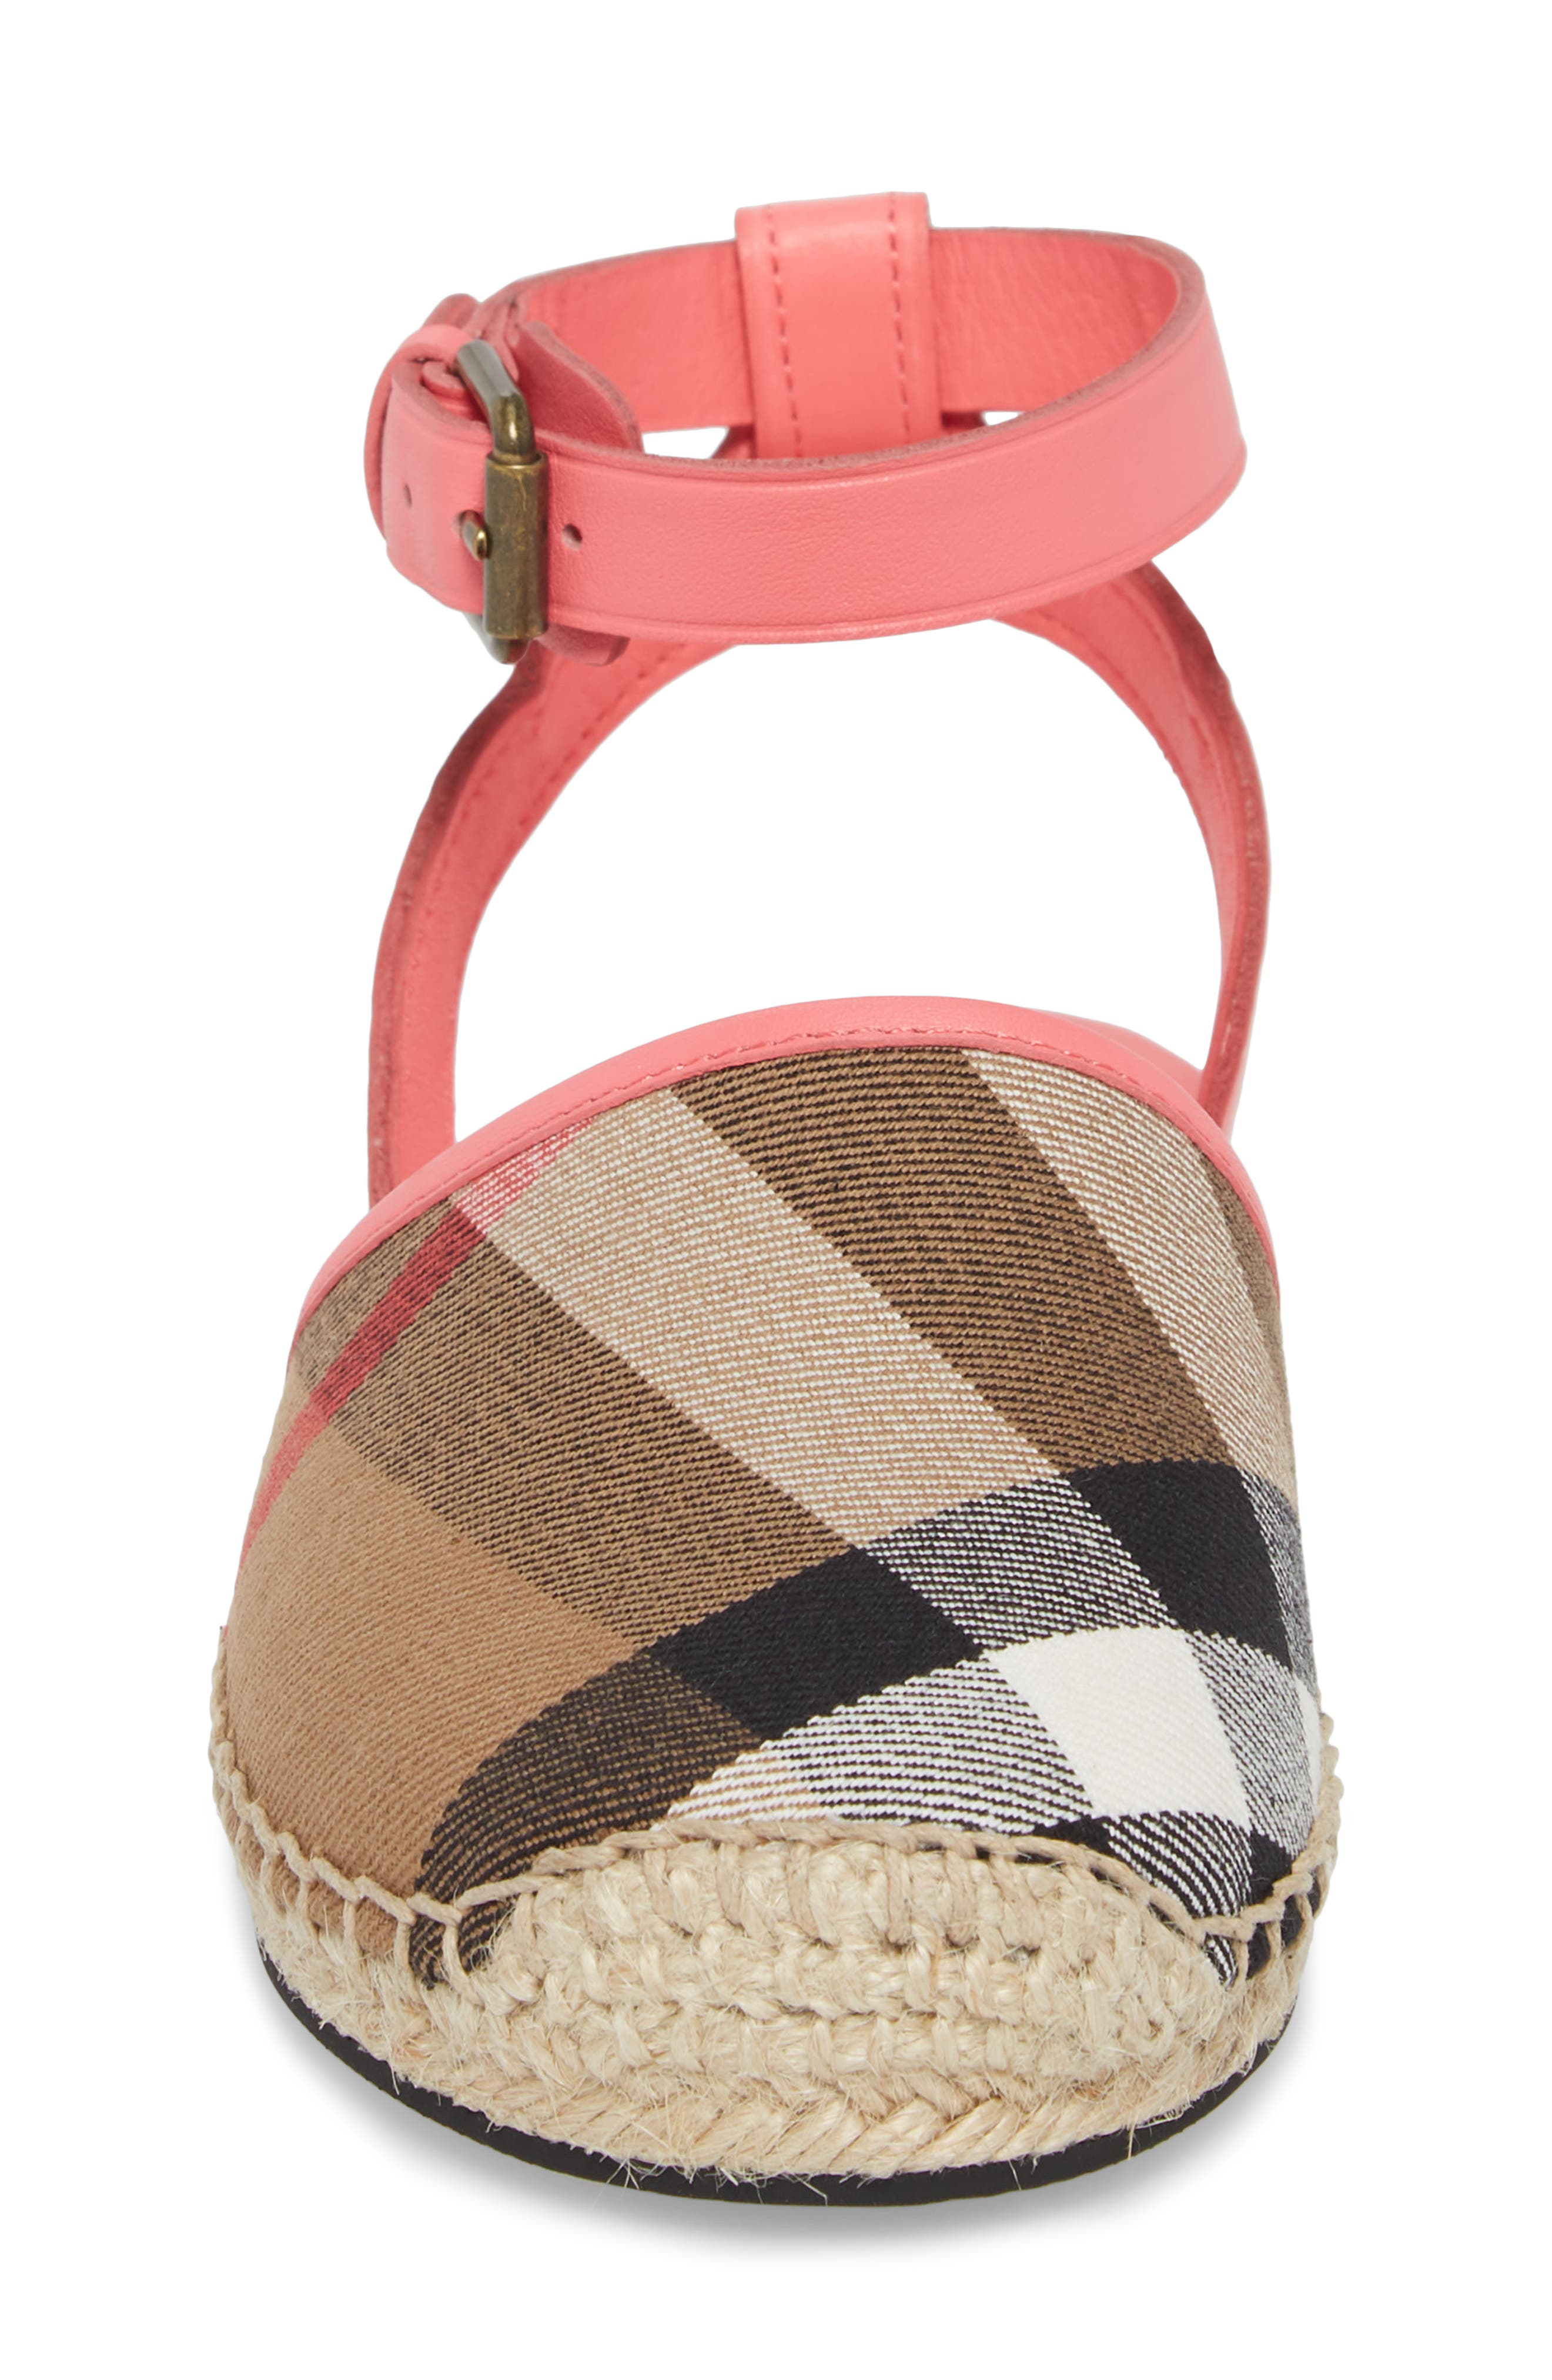 New Perth Espadrille Sandal,                             Alternate thumbnail 4, color,                             676